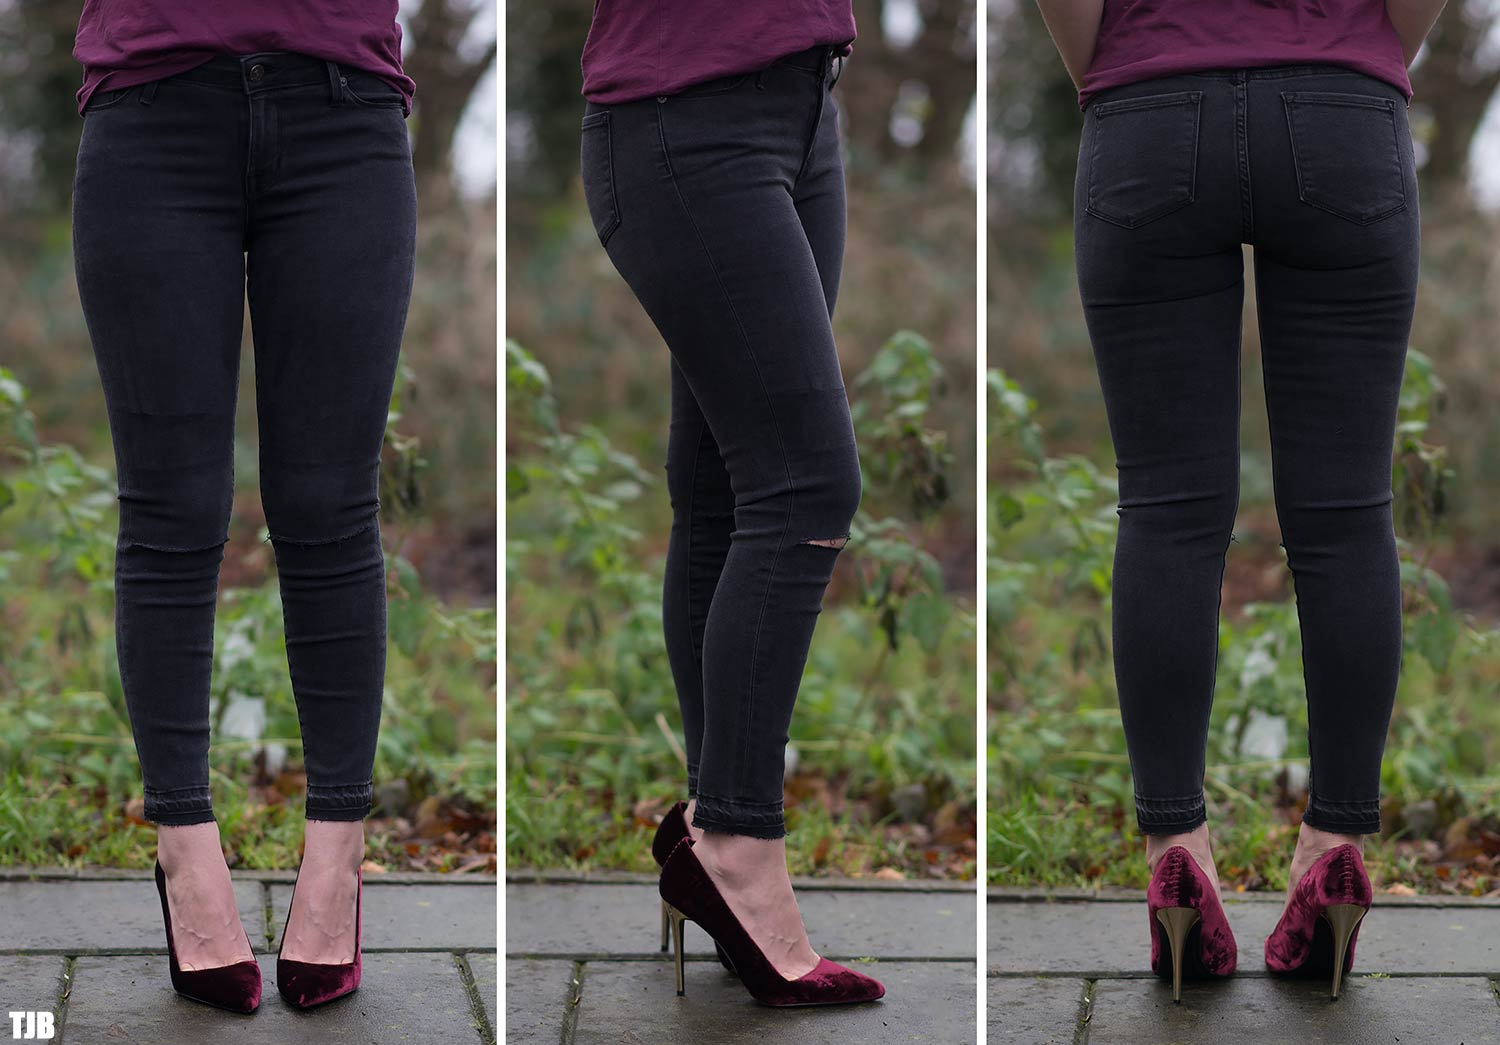 Premium skinny jeans next review